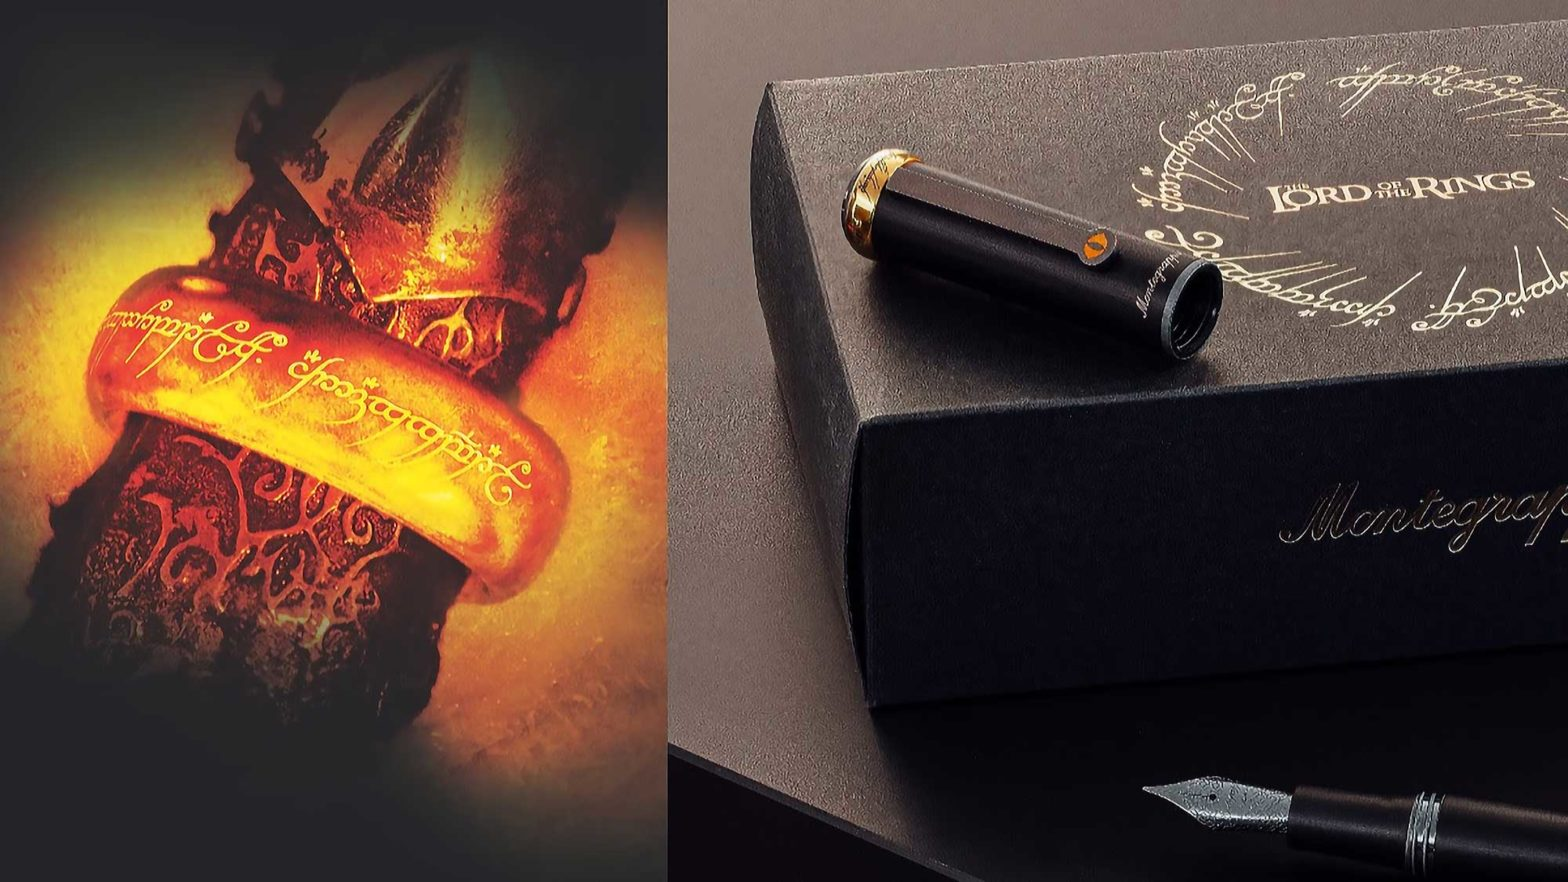 The Lord of the Rings: Eye of Sauron Pen